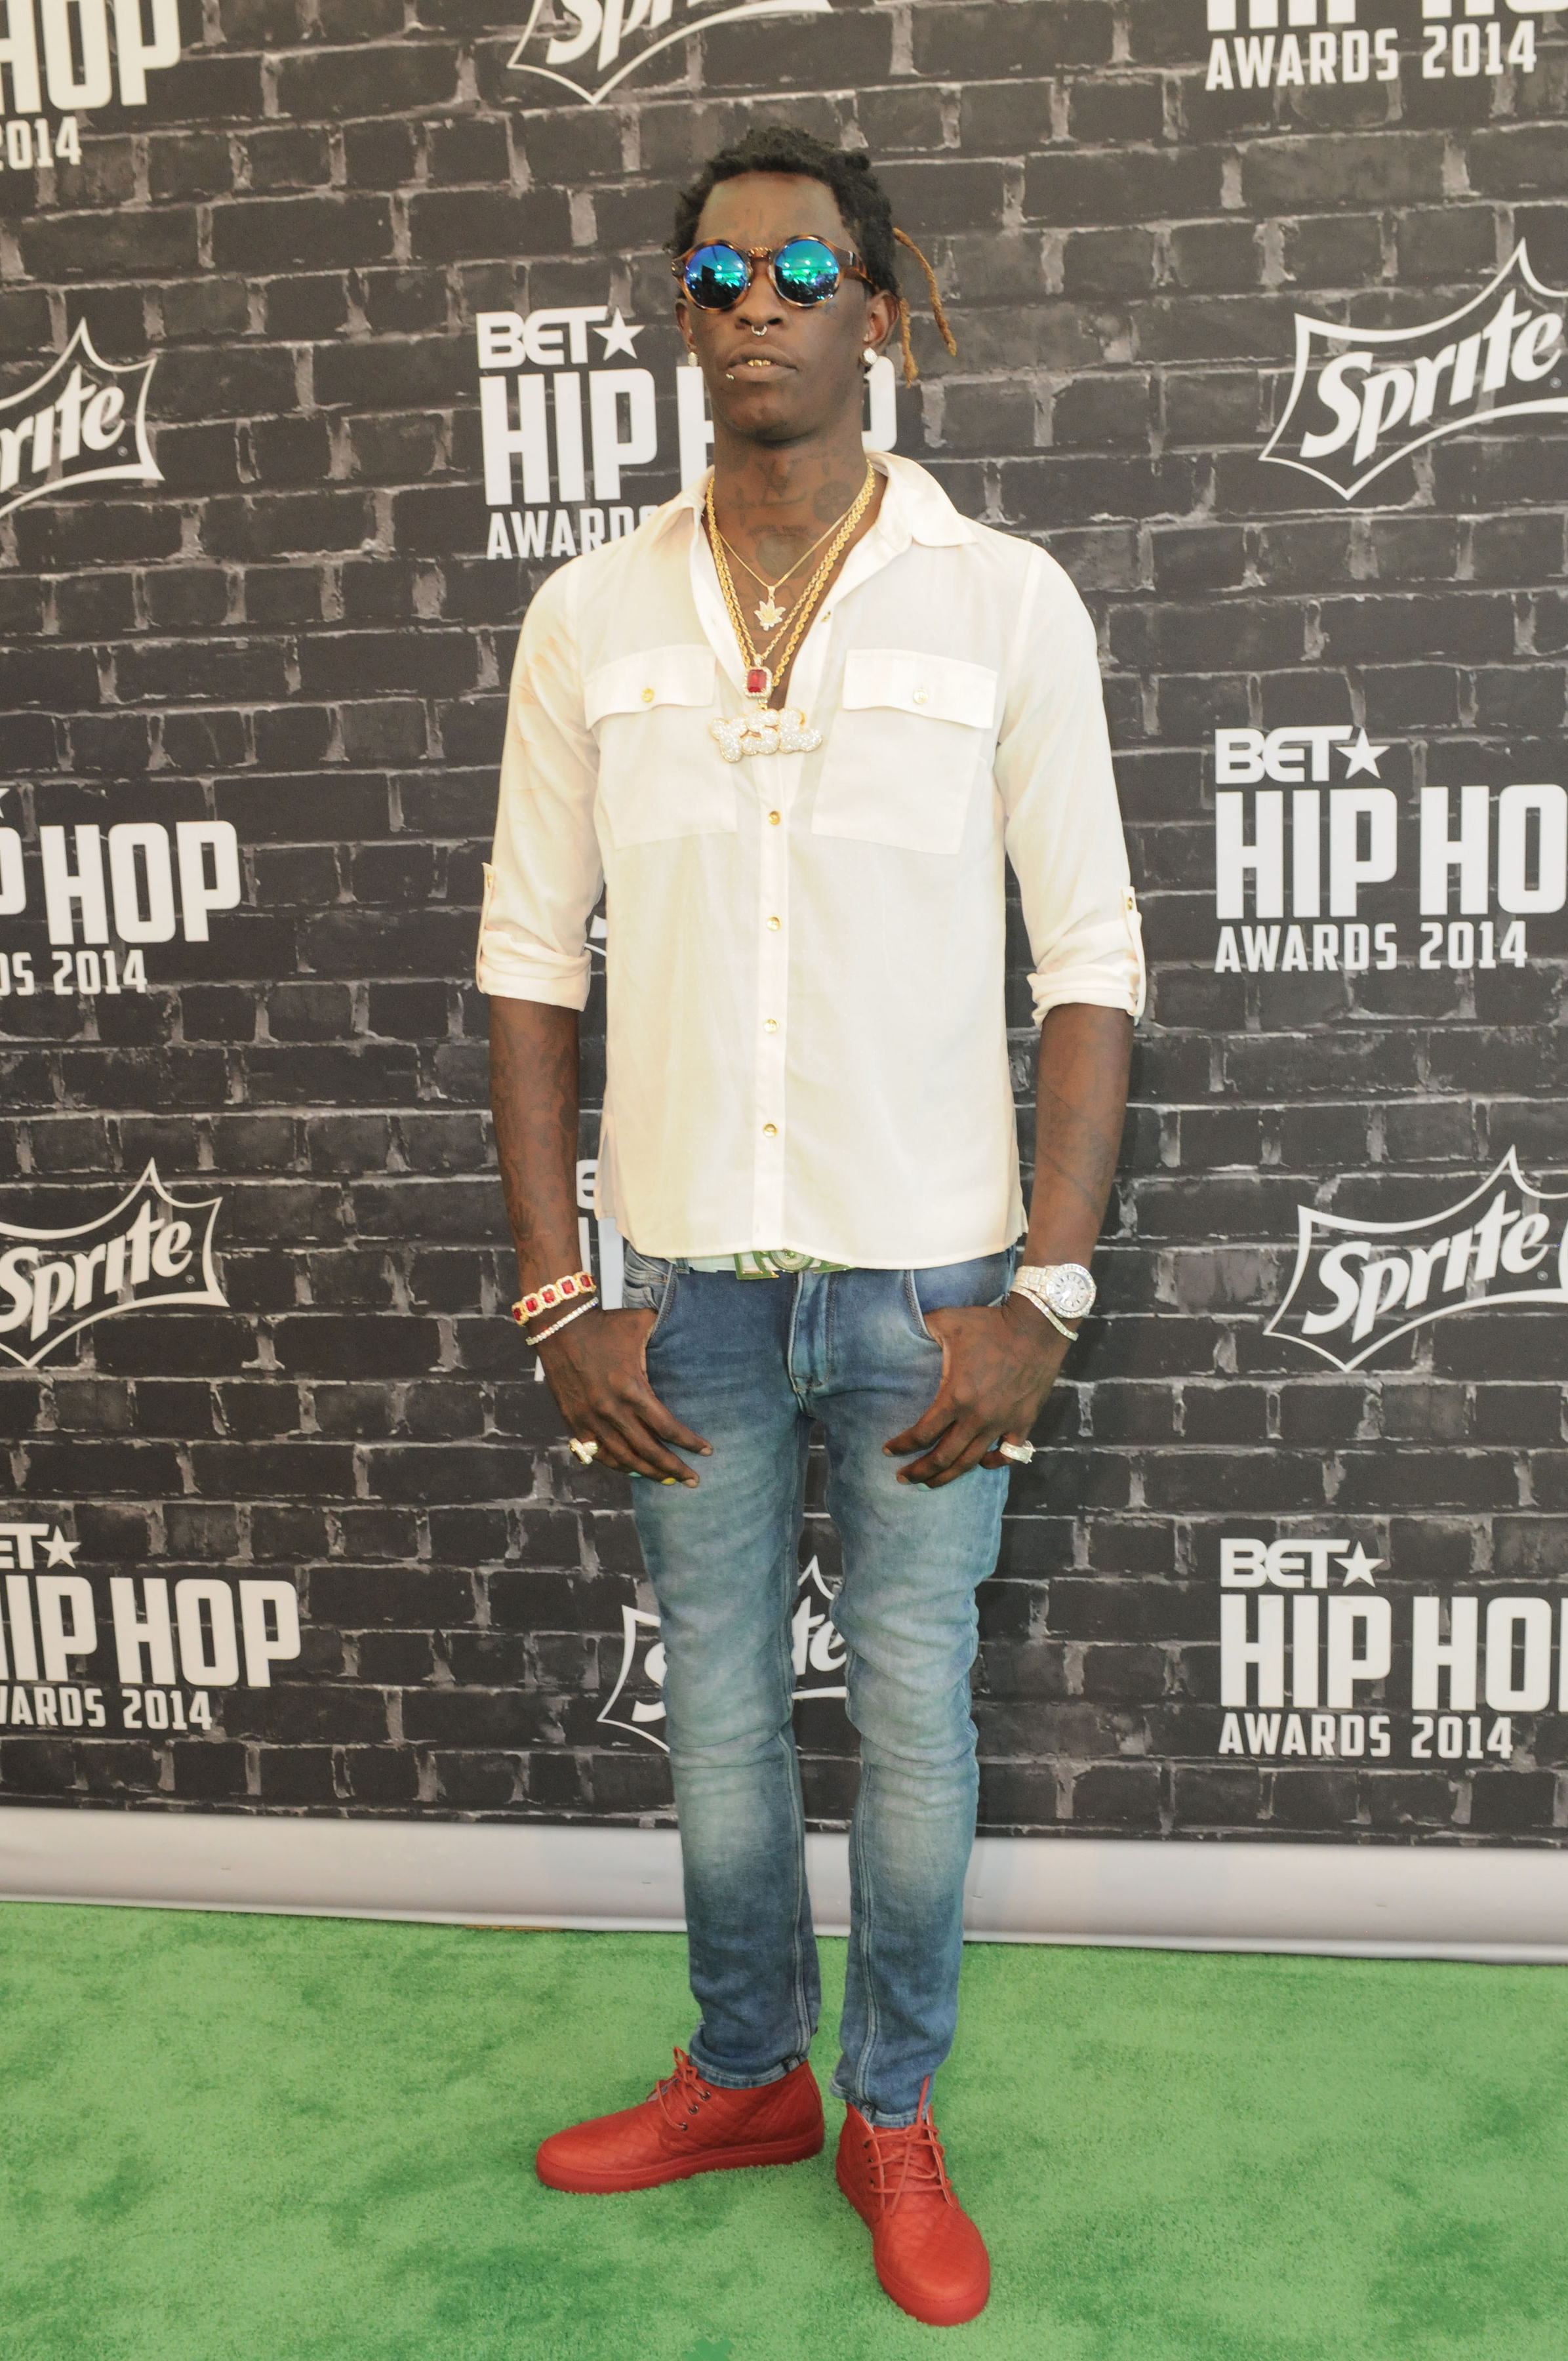 Rapper Young Thug Booked On Weapons Charge In Los Angeles